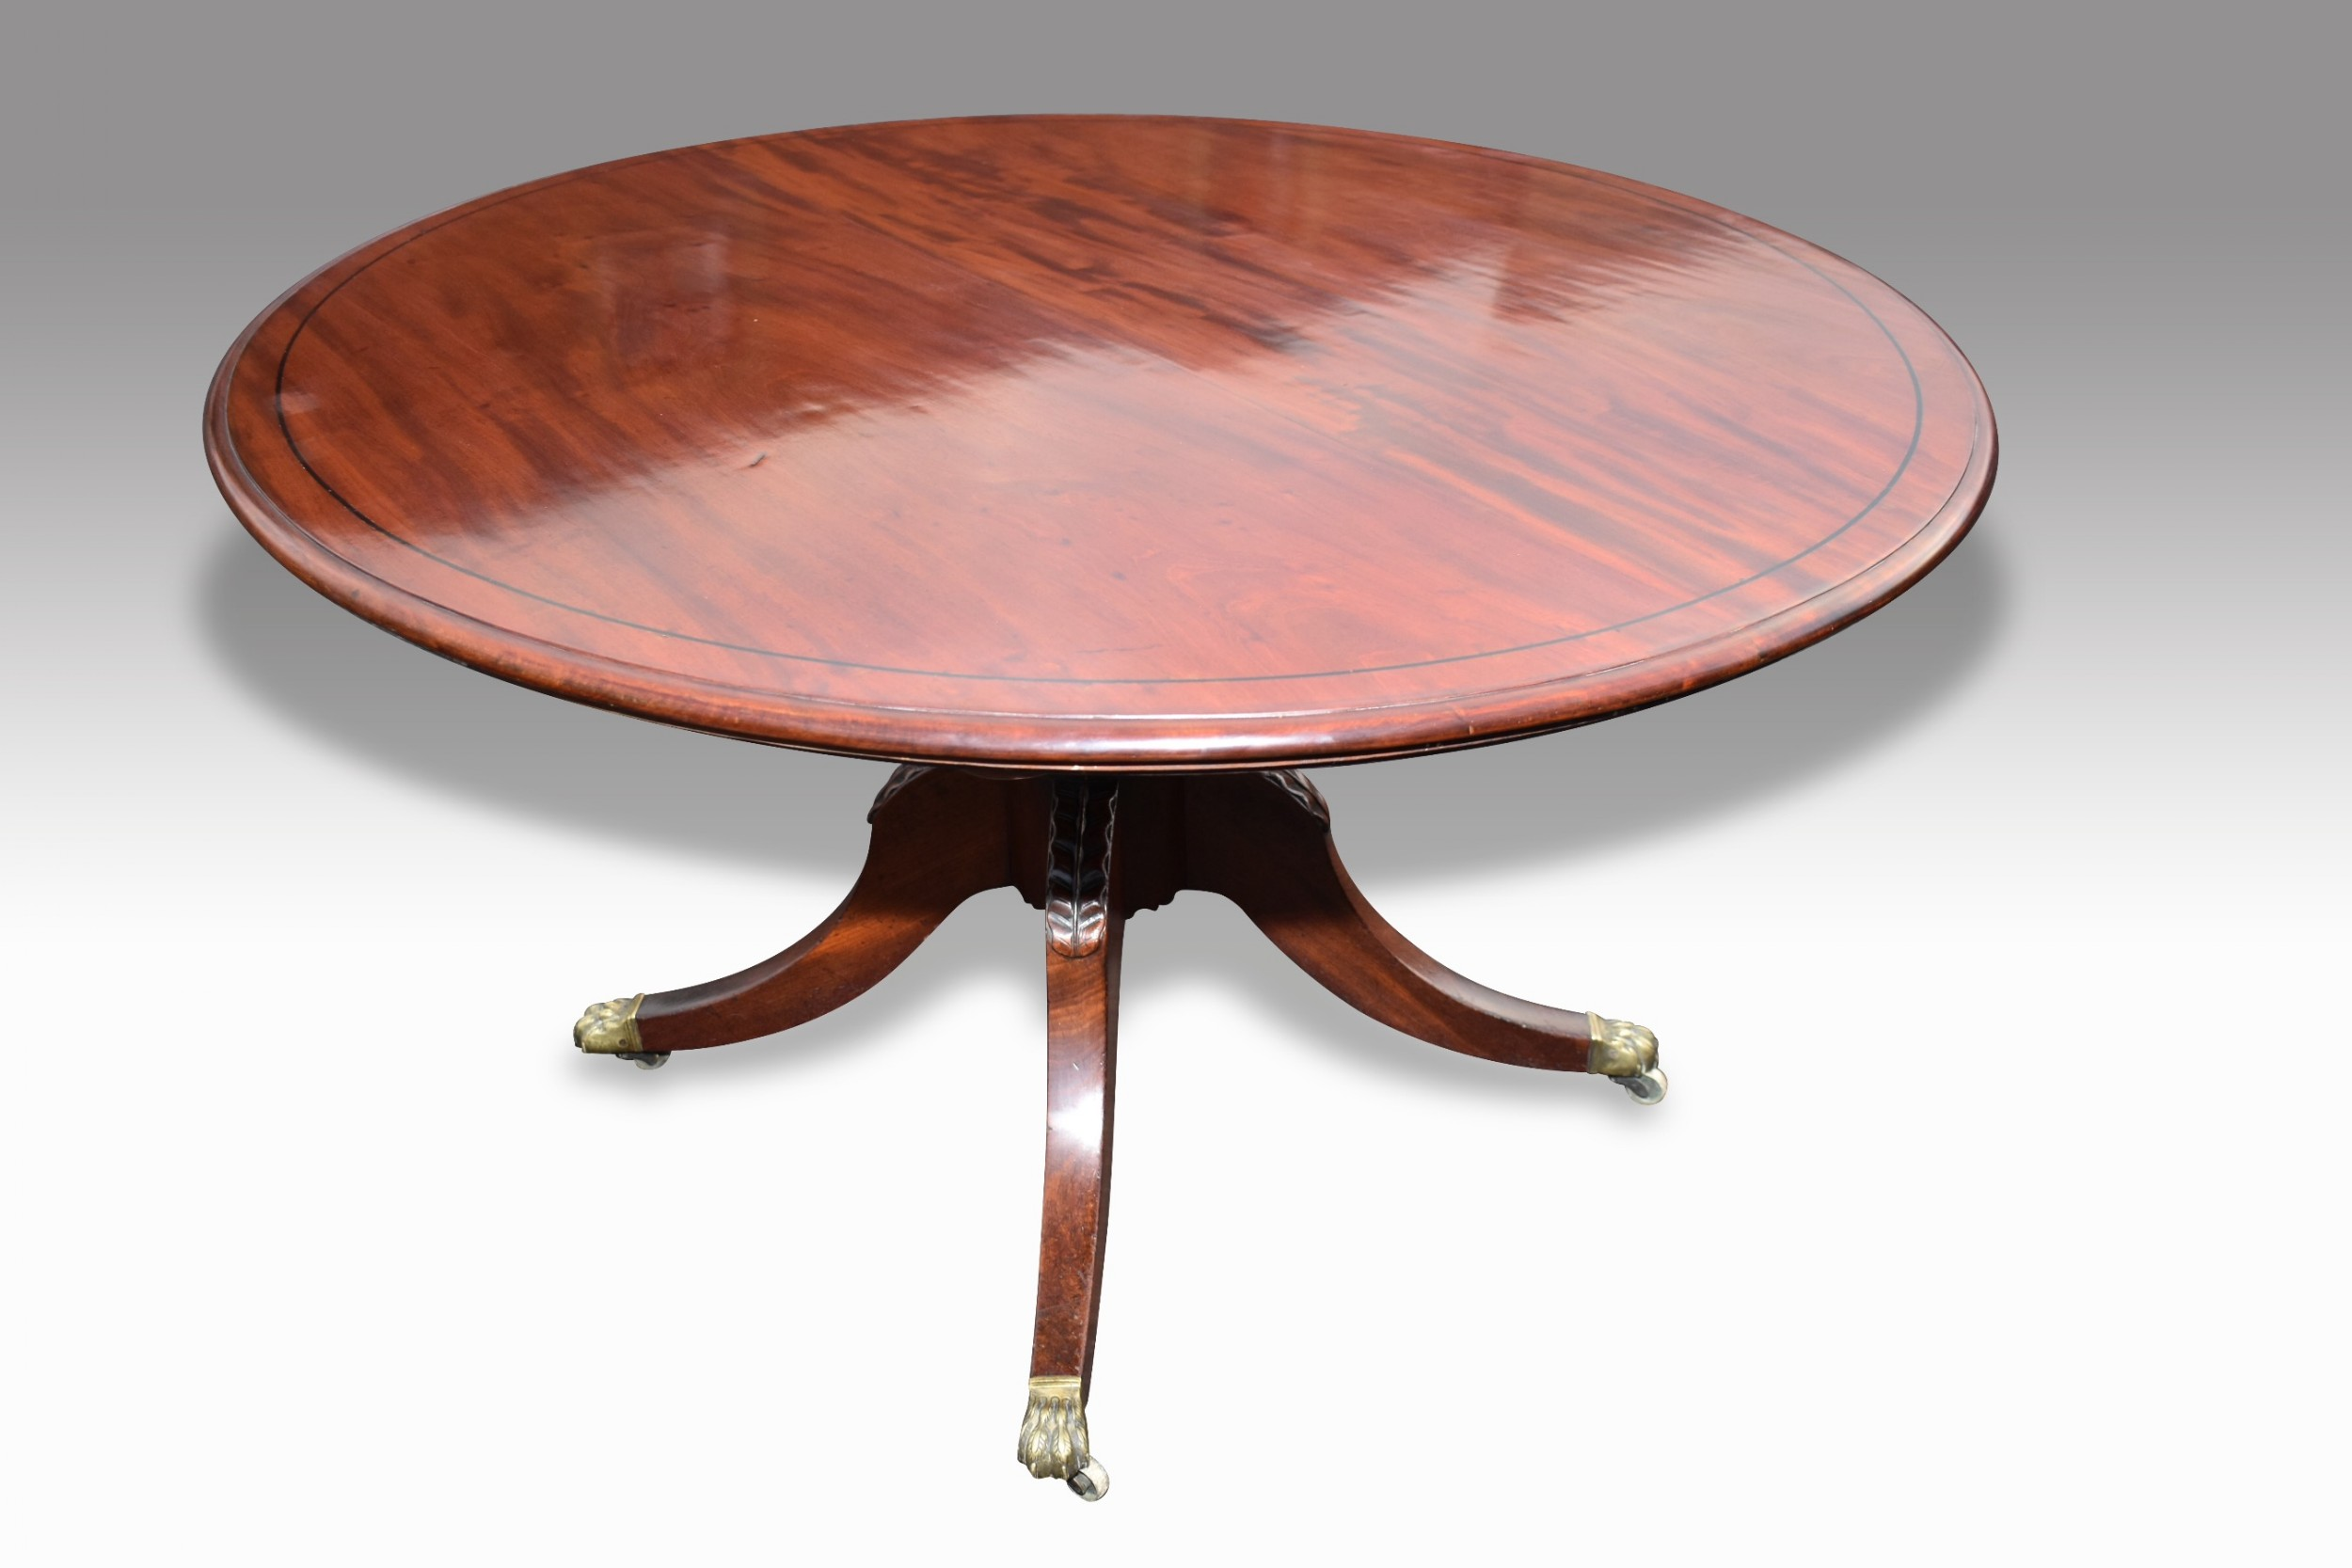 a fine quality regency mahogany ebony inlaid tilt top oval breakfast table